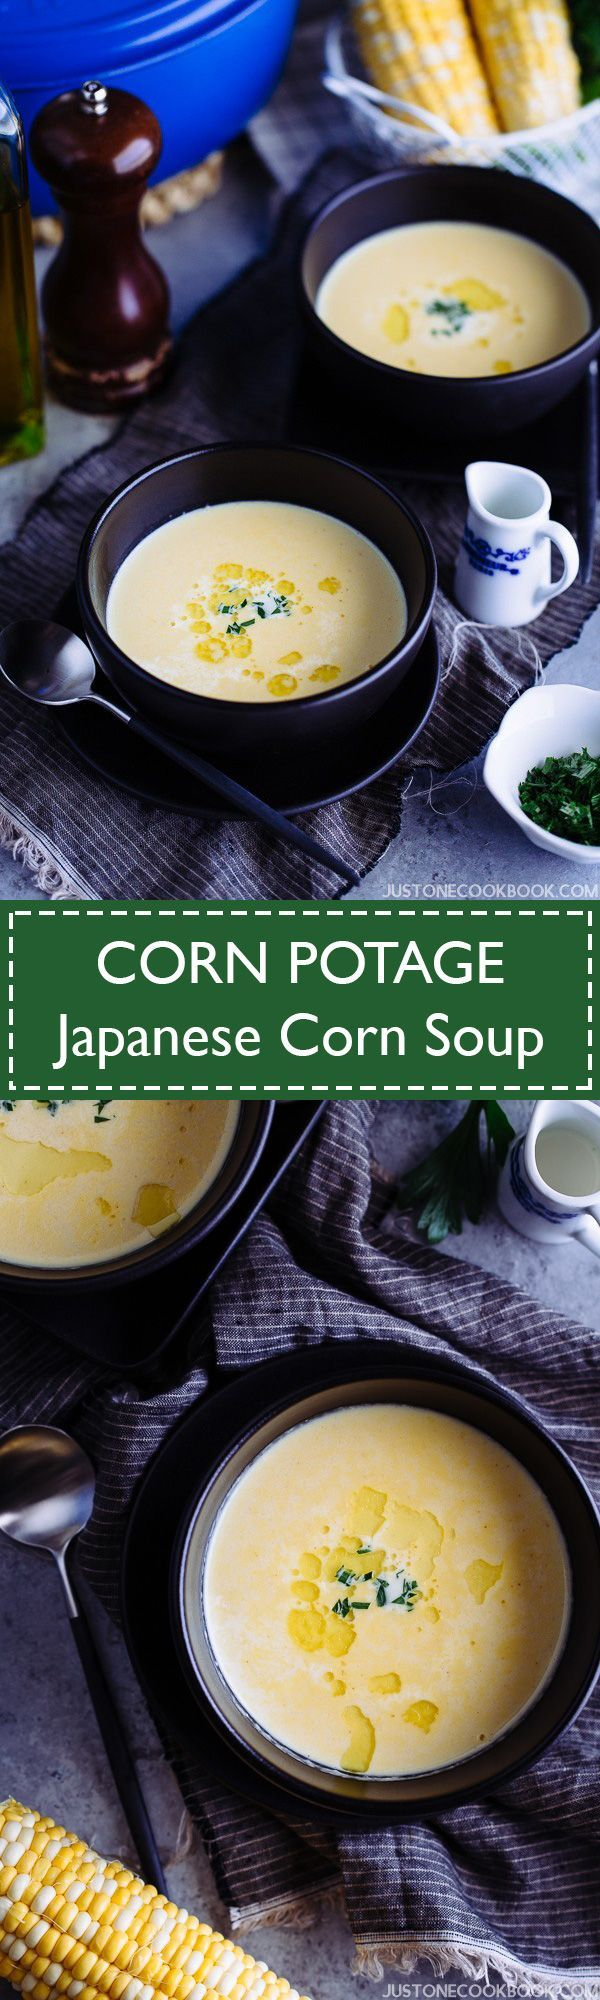 Corn Potage コーンポタージュ (Japanese Corn Soup コーンスープ) | Easy Japanese Recipes at JustOneCookbook.com